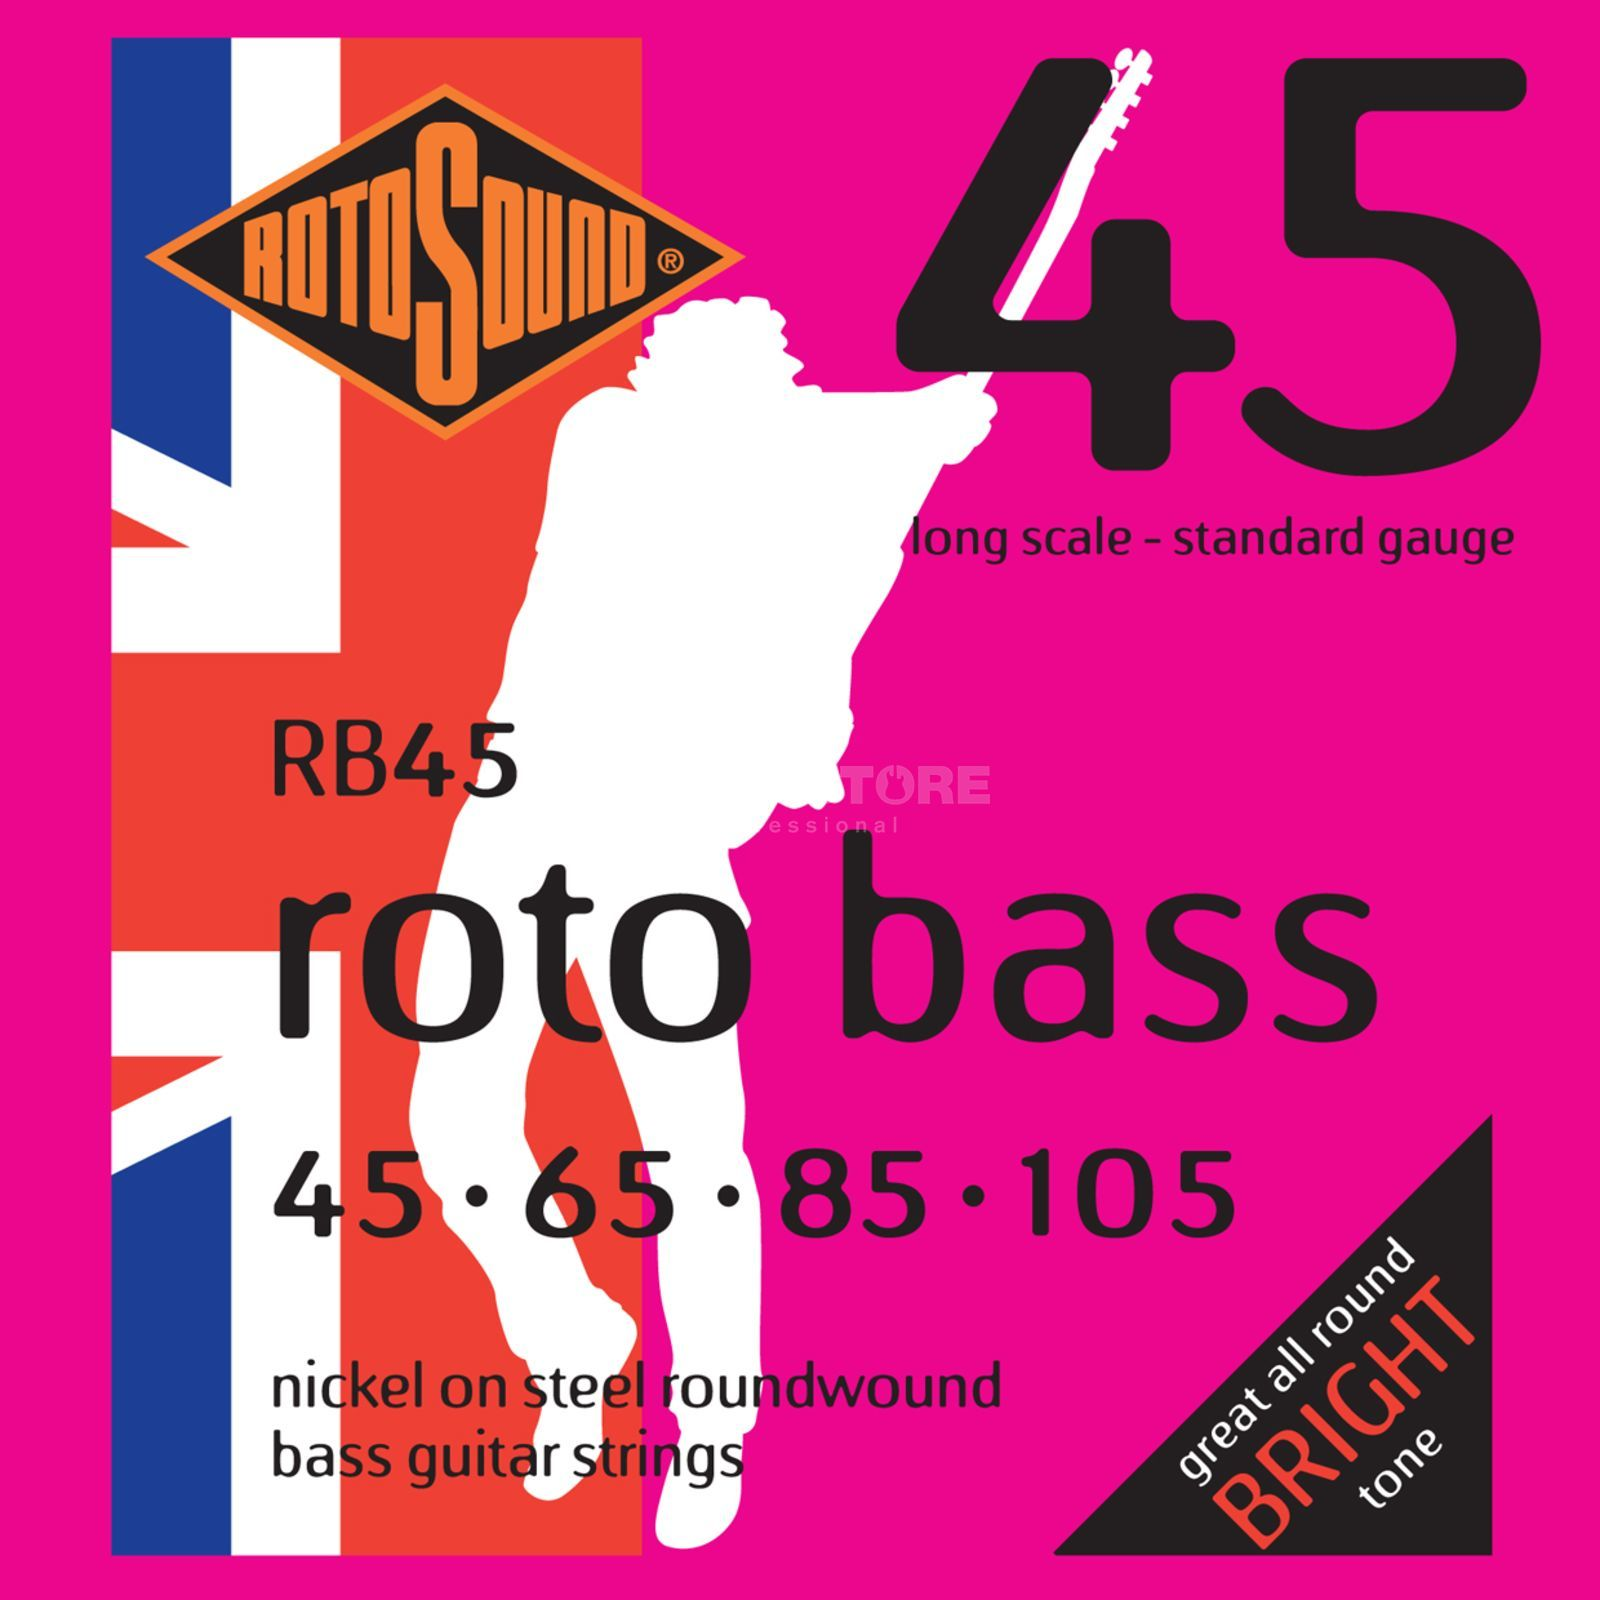 Rotosound RB45 RotoBass Nickel Bass Guit ar Strings 45-105   Immagine prodotto